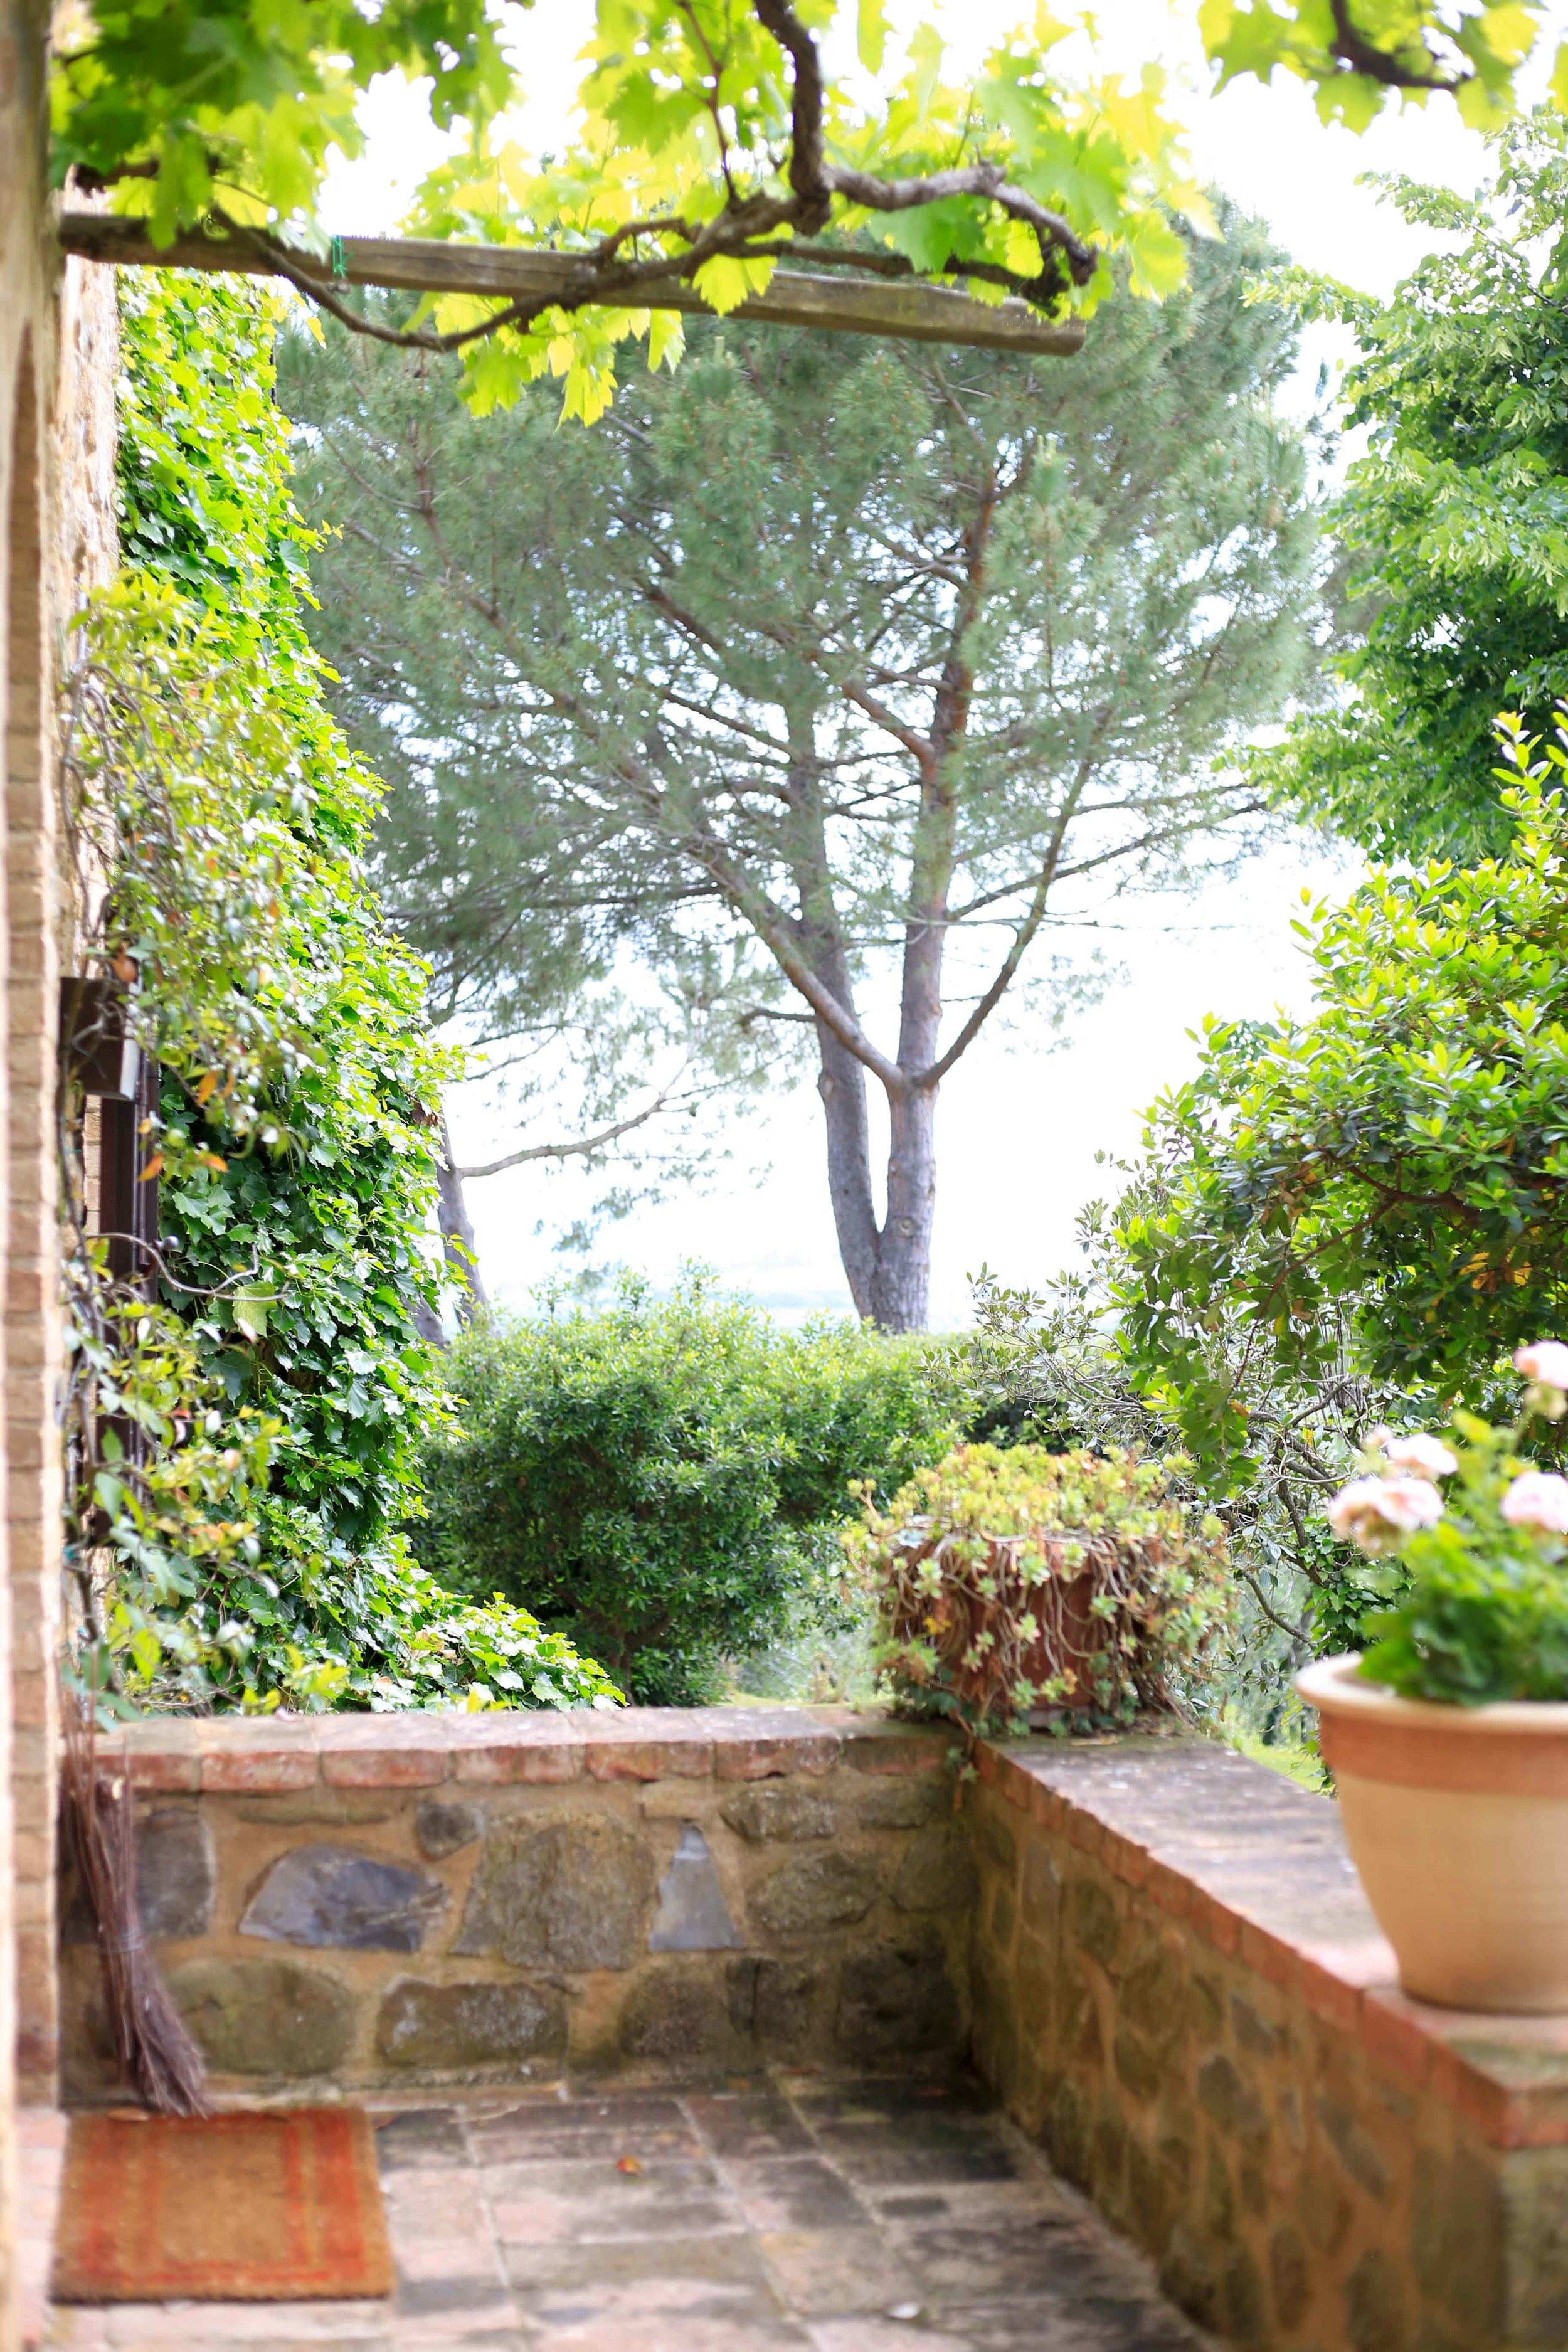 The front porch of Maté Winery in Tuscany